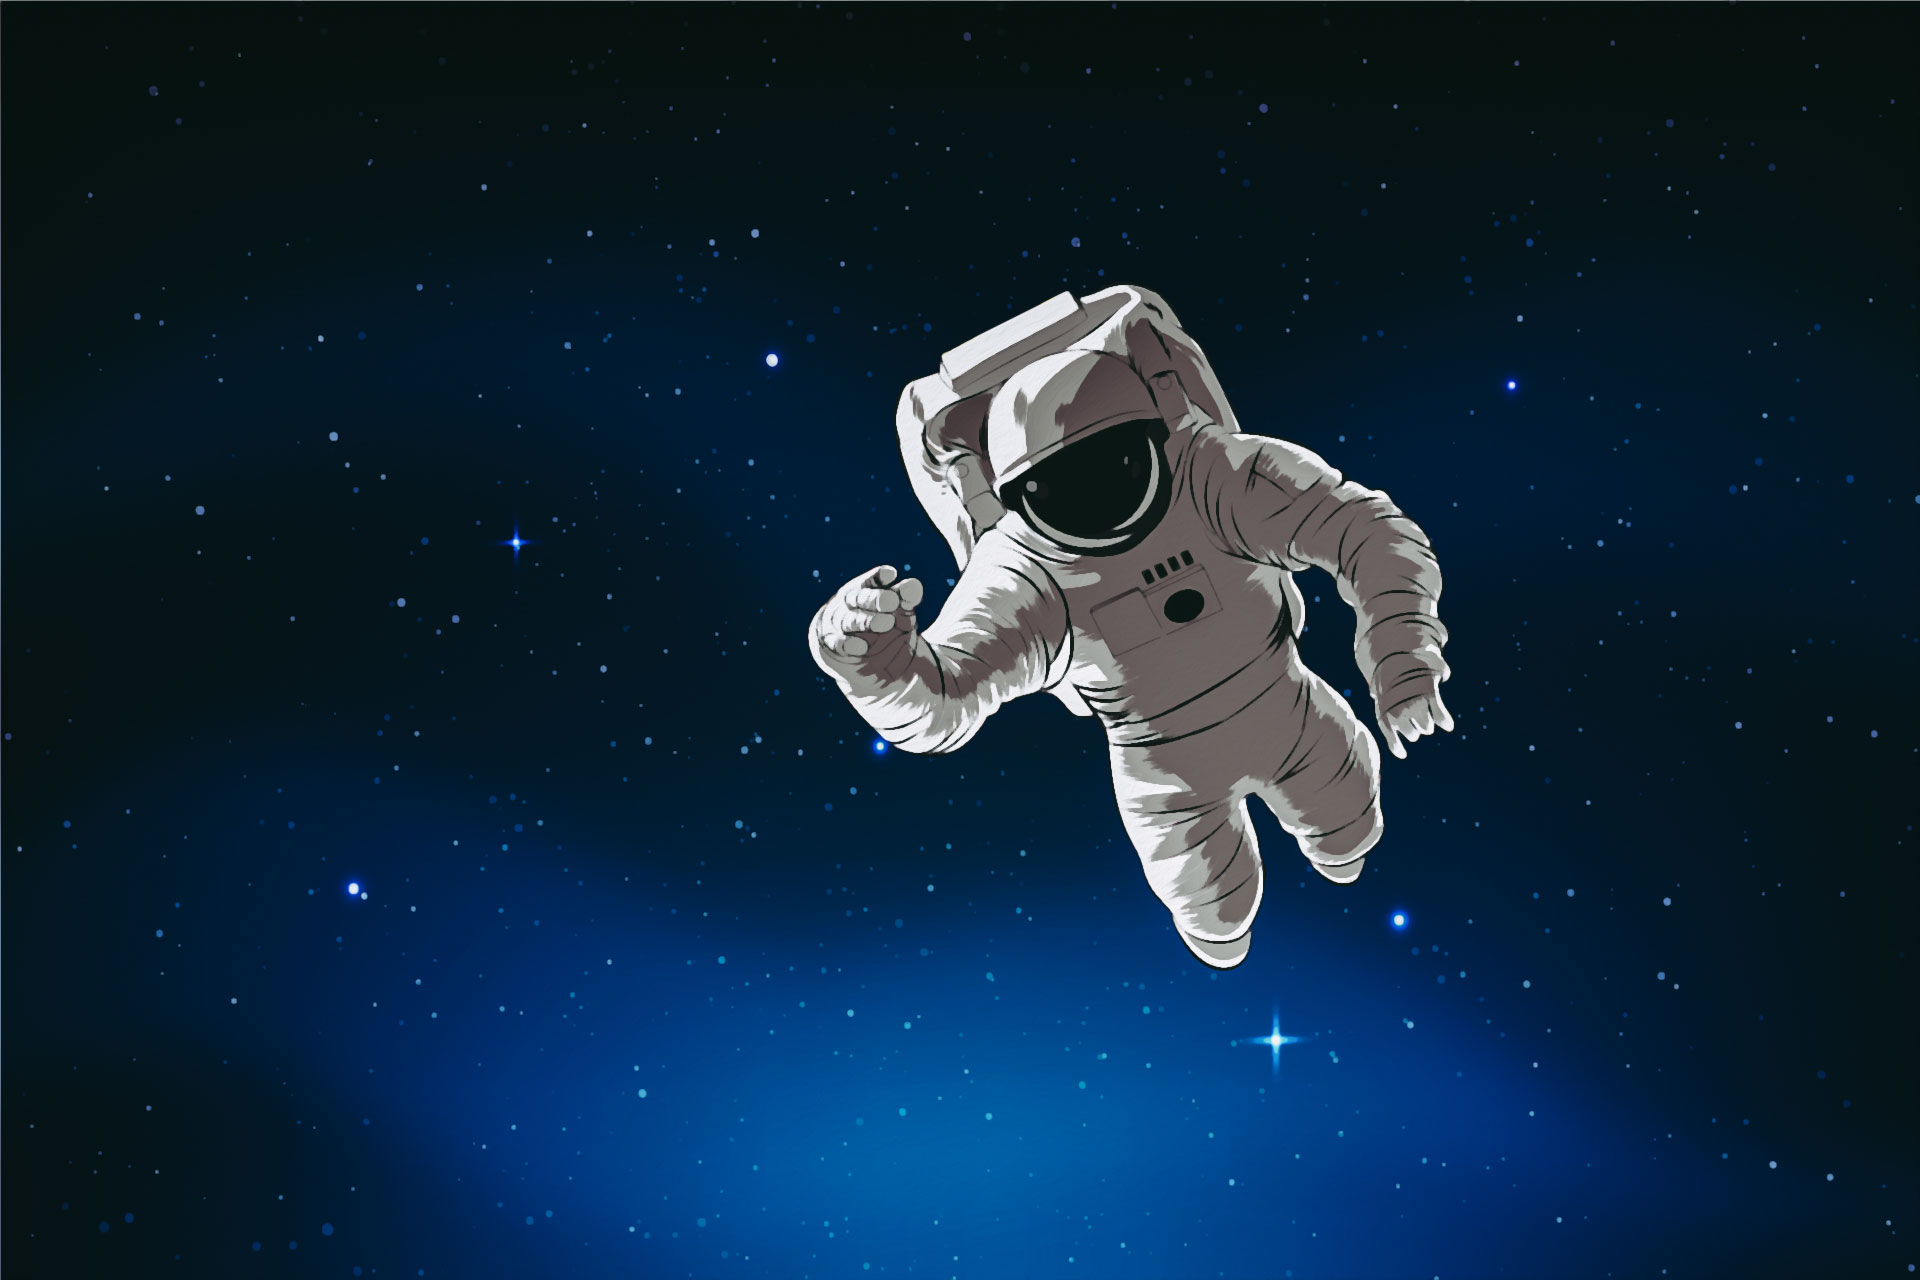 Illustration of an astronaut floating in deep space